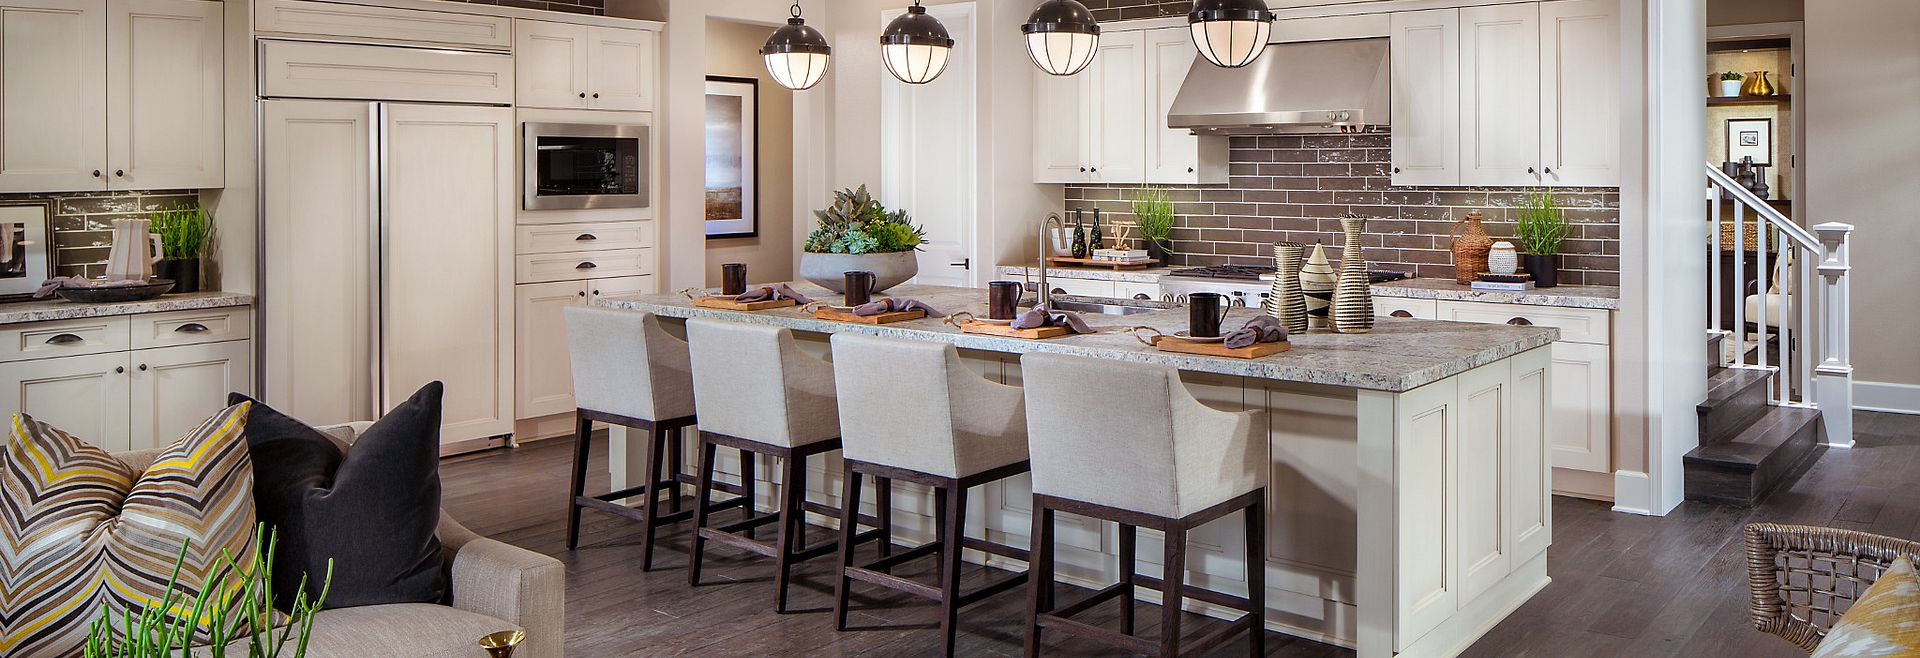 Residence 2 open kitchen with granite counter-tops, creamy white cabinets, recessed lighting, and pendant lighting